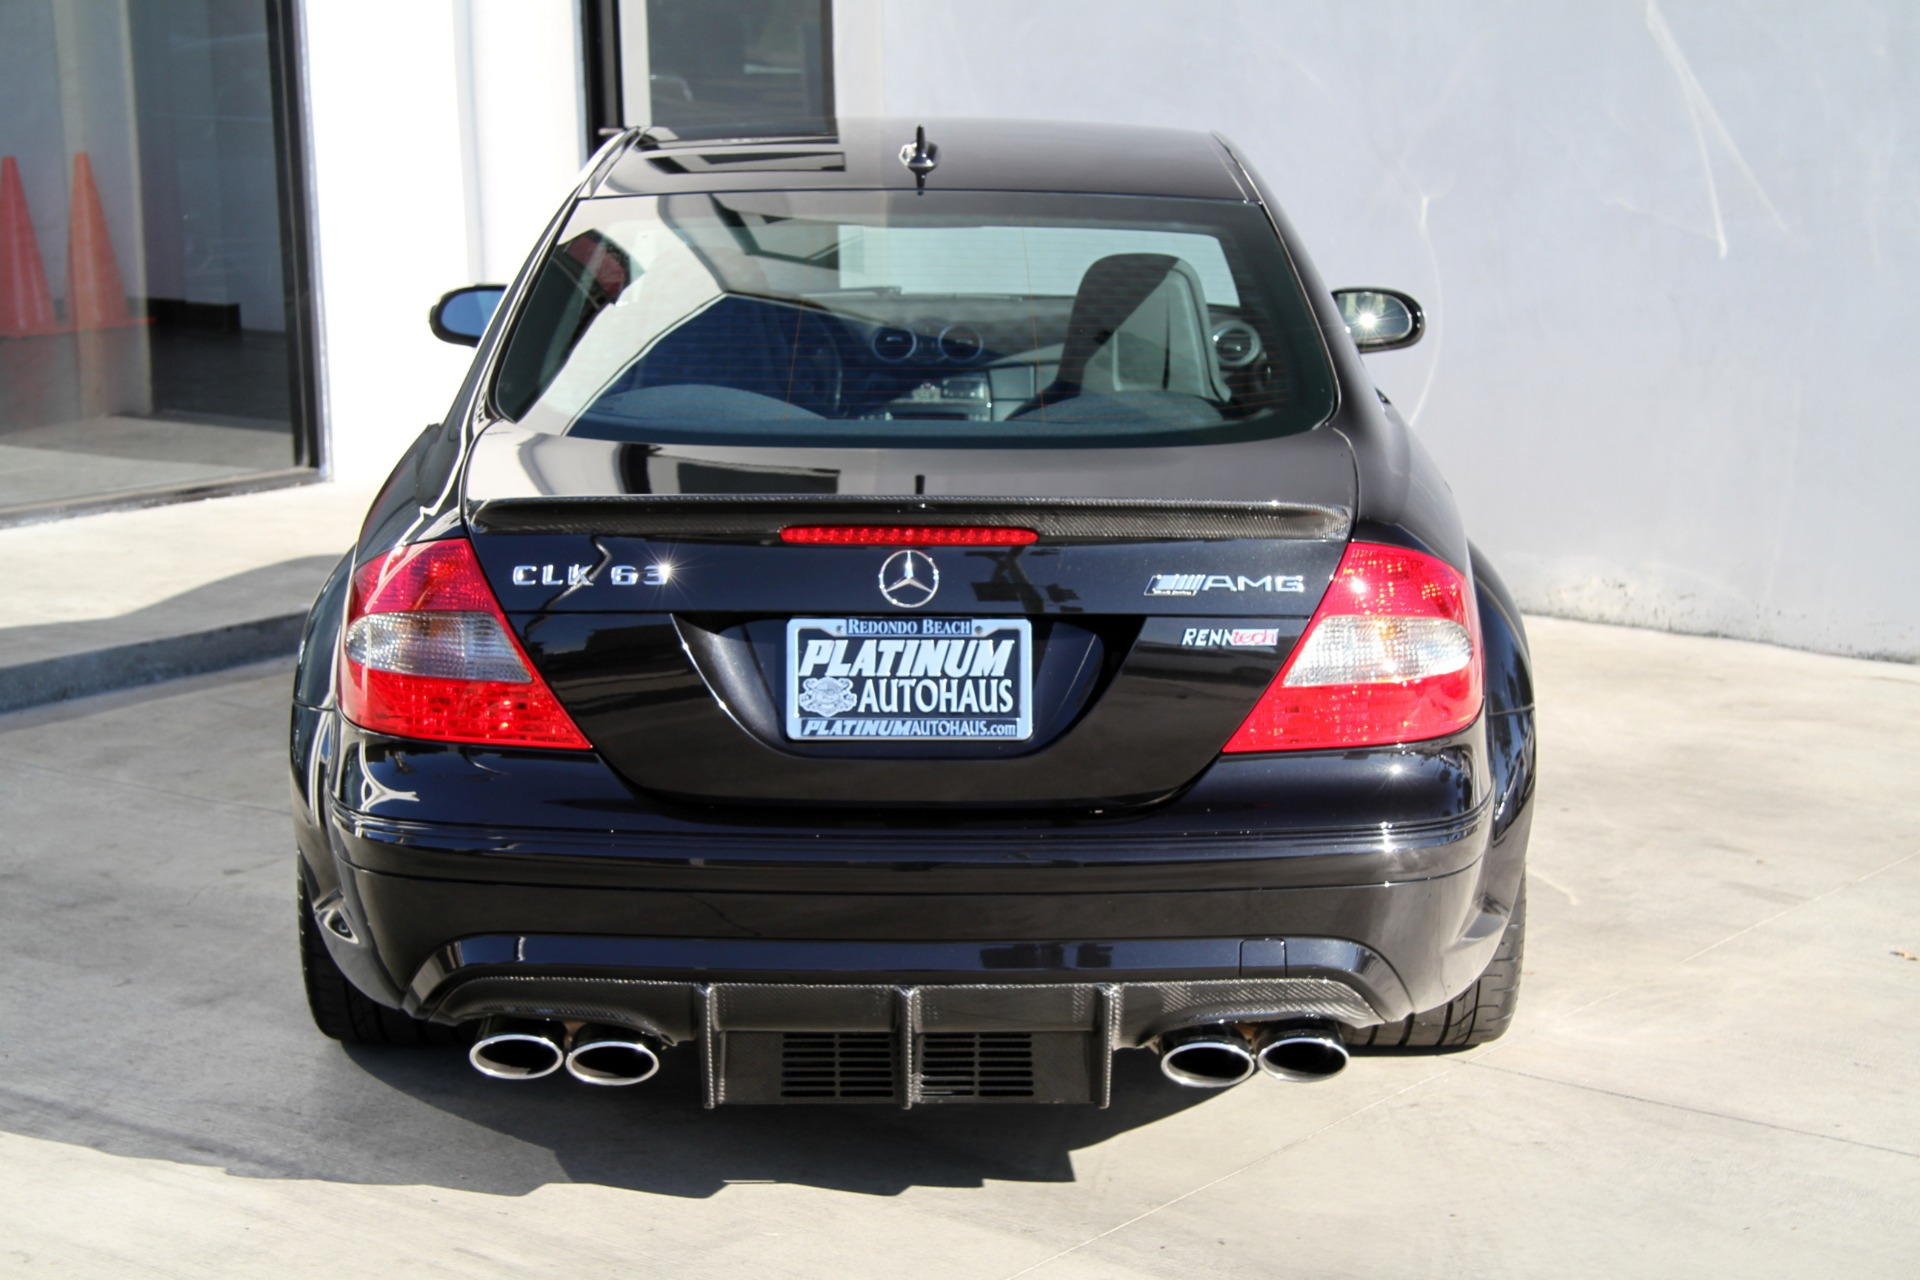 2008 mercedes benz clk 63 amg black series stock 6069 for Mercedes benz clk63 amg black series for sale